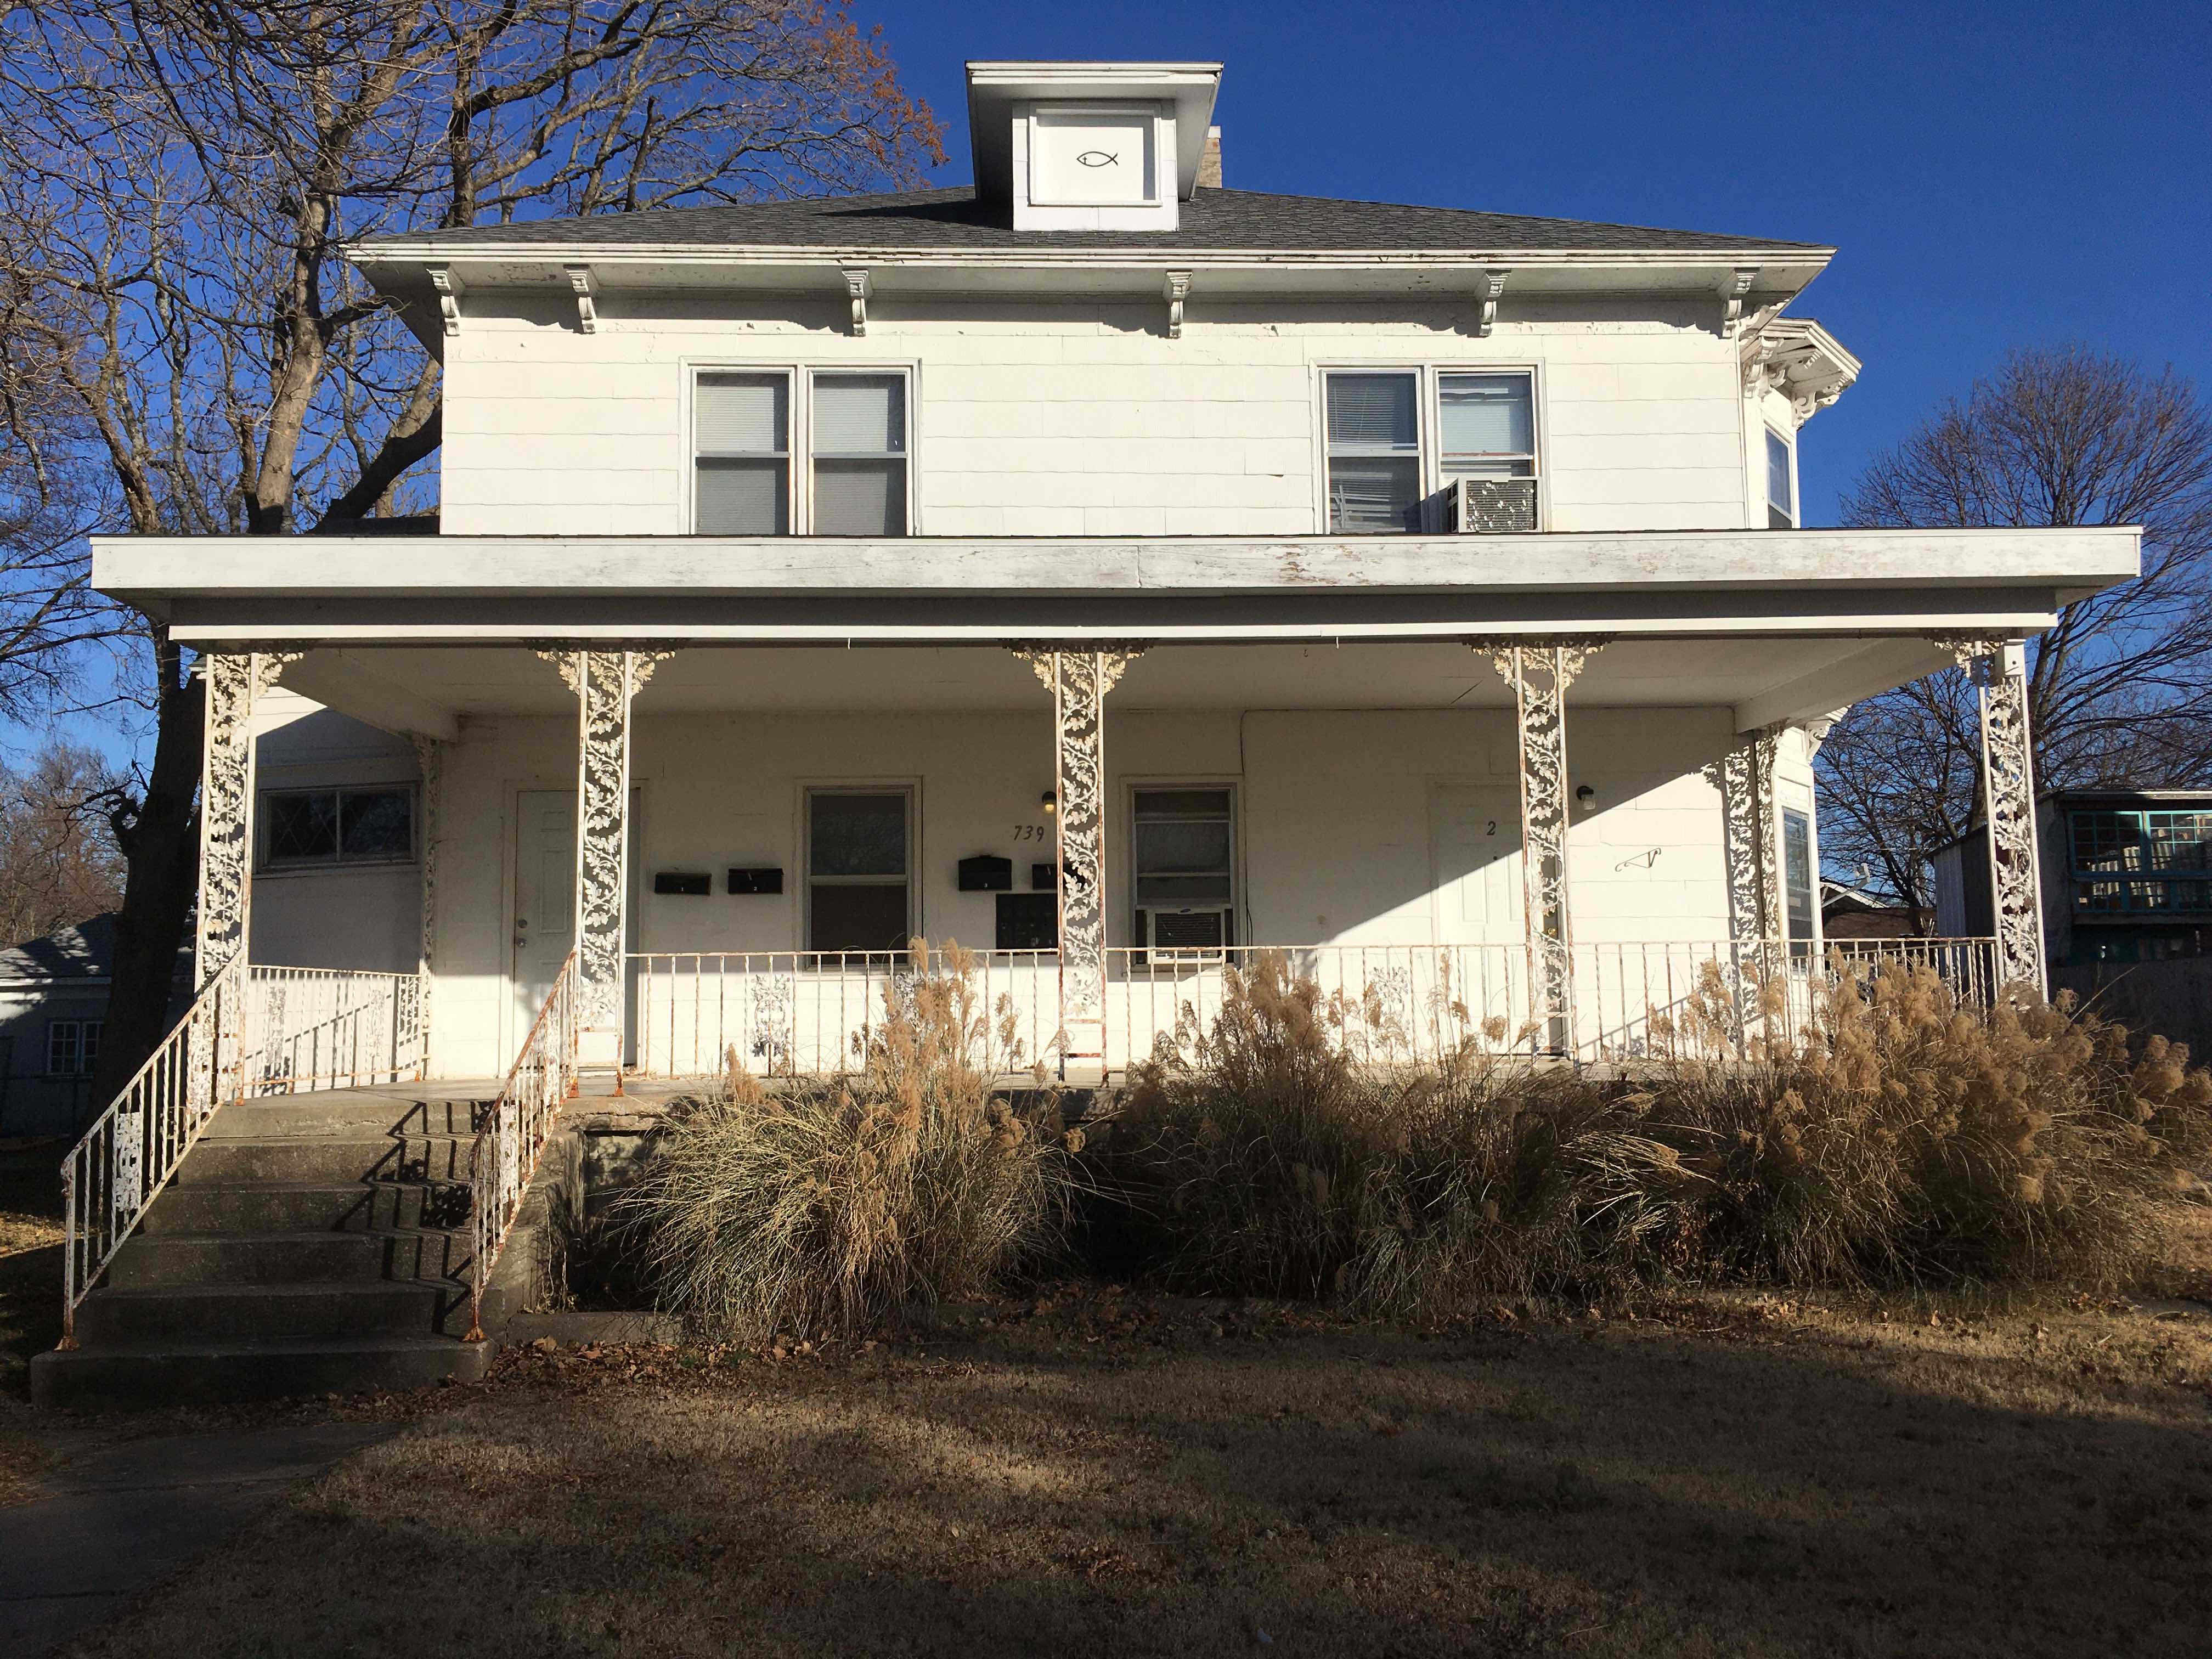 739 S. Crawford, Fort Scott, Bourbon County, Kansas, United States 66701, 1 Bedroom Bedrooms, ,1 BathroomBathrooms,Apartment,For Rent, S. Crawford,1,1023